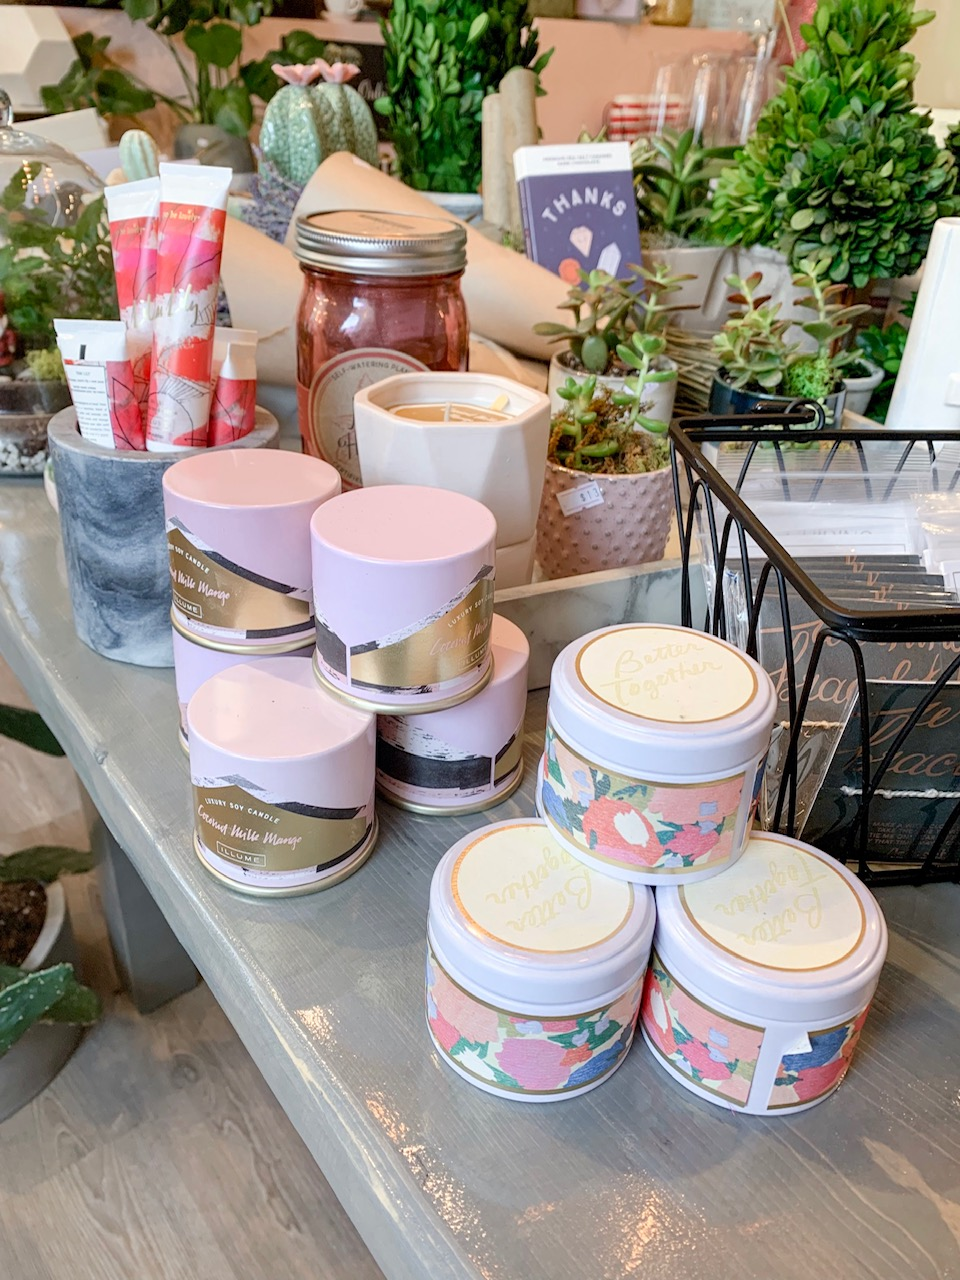 Summer scents - Soy candles and hand creams starting at $13